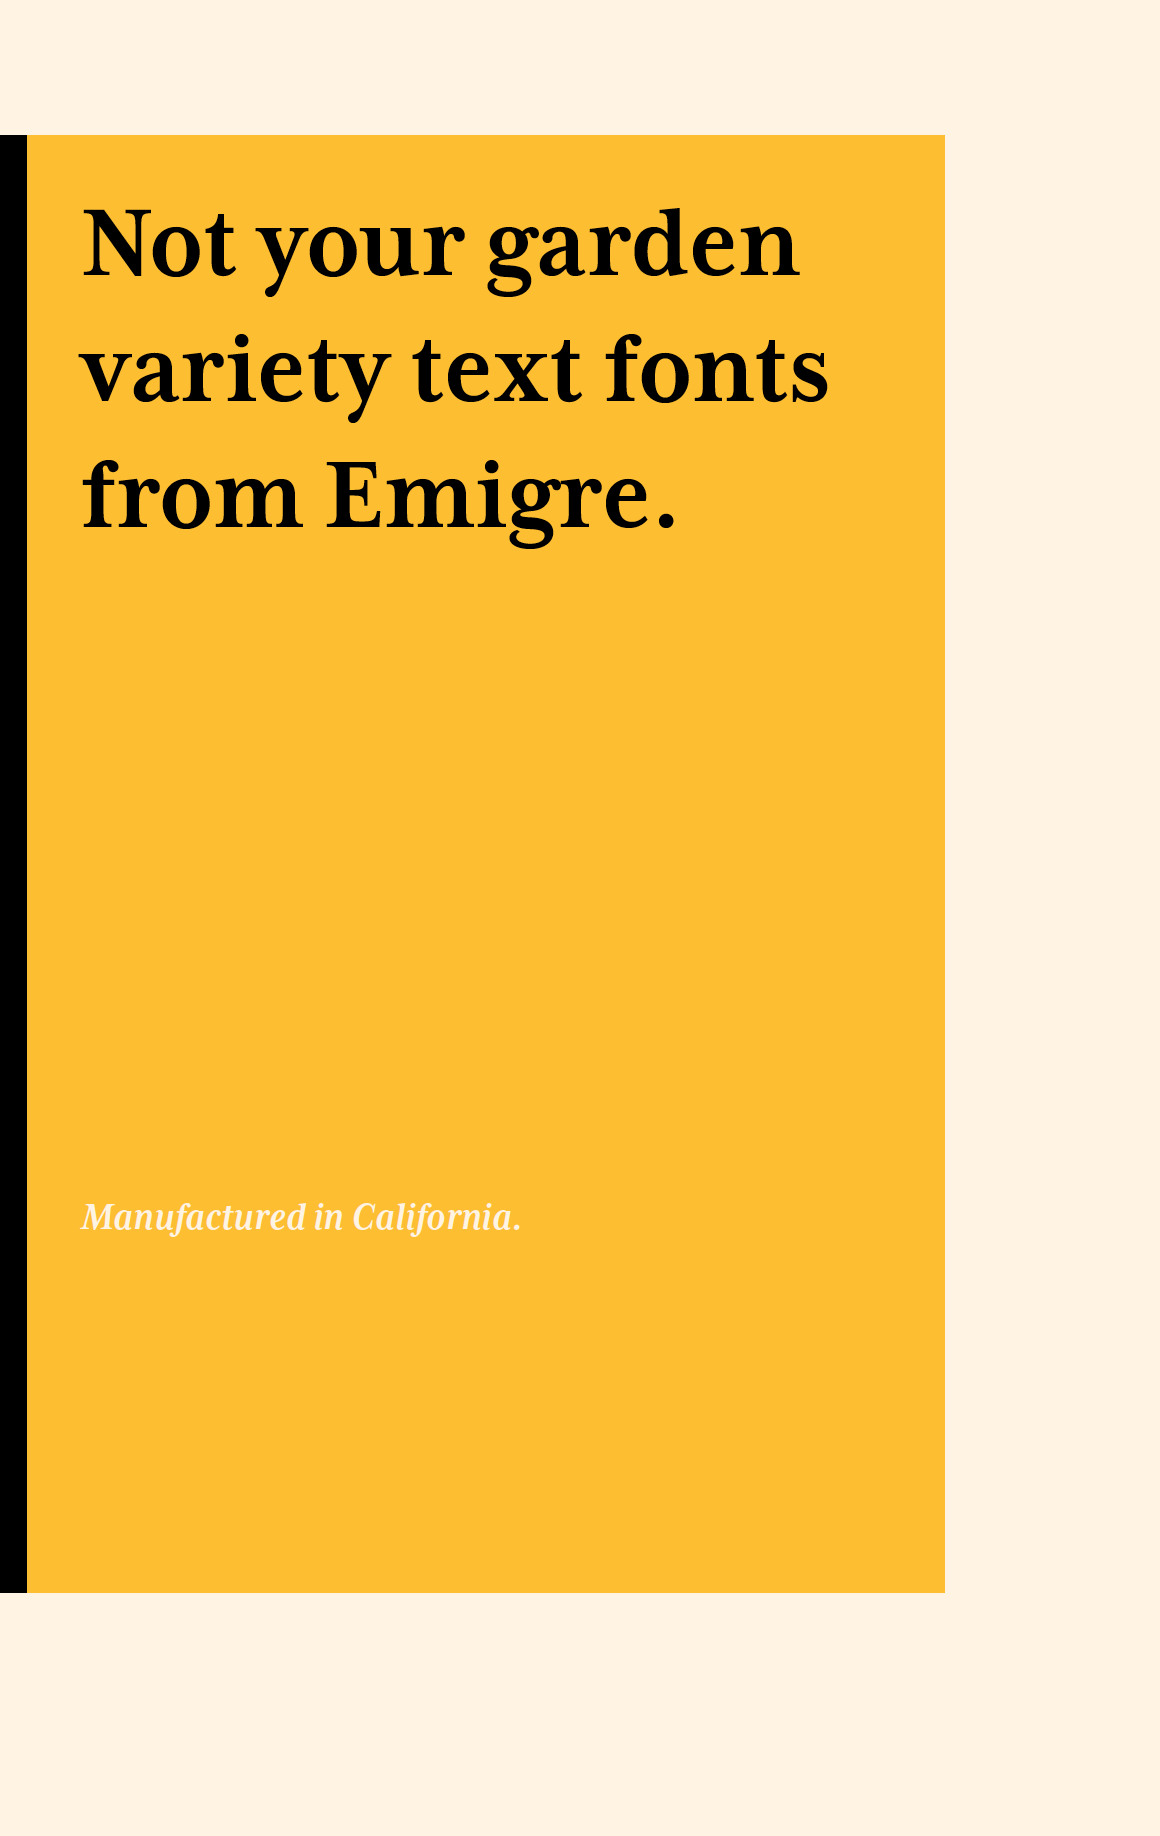 Emigre PDF Cover Not Your Garden Variety